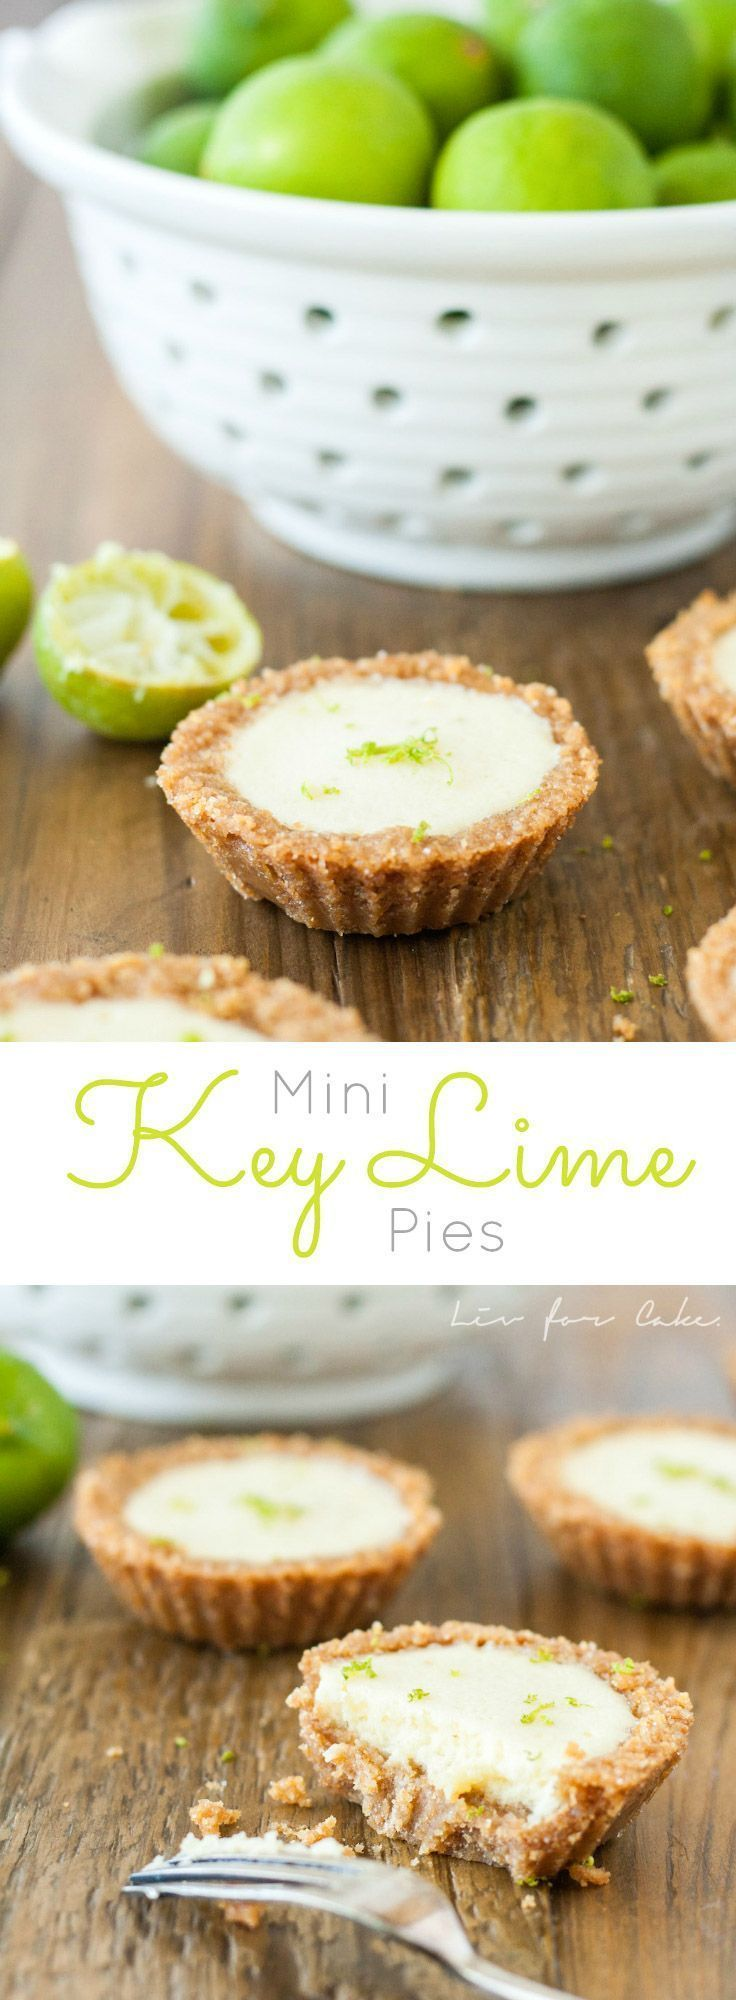 Adorable, mini versions of one of the best desserts ever -- Key Lime pie. | http://livforcake.com